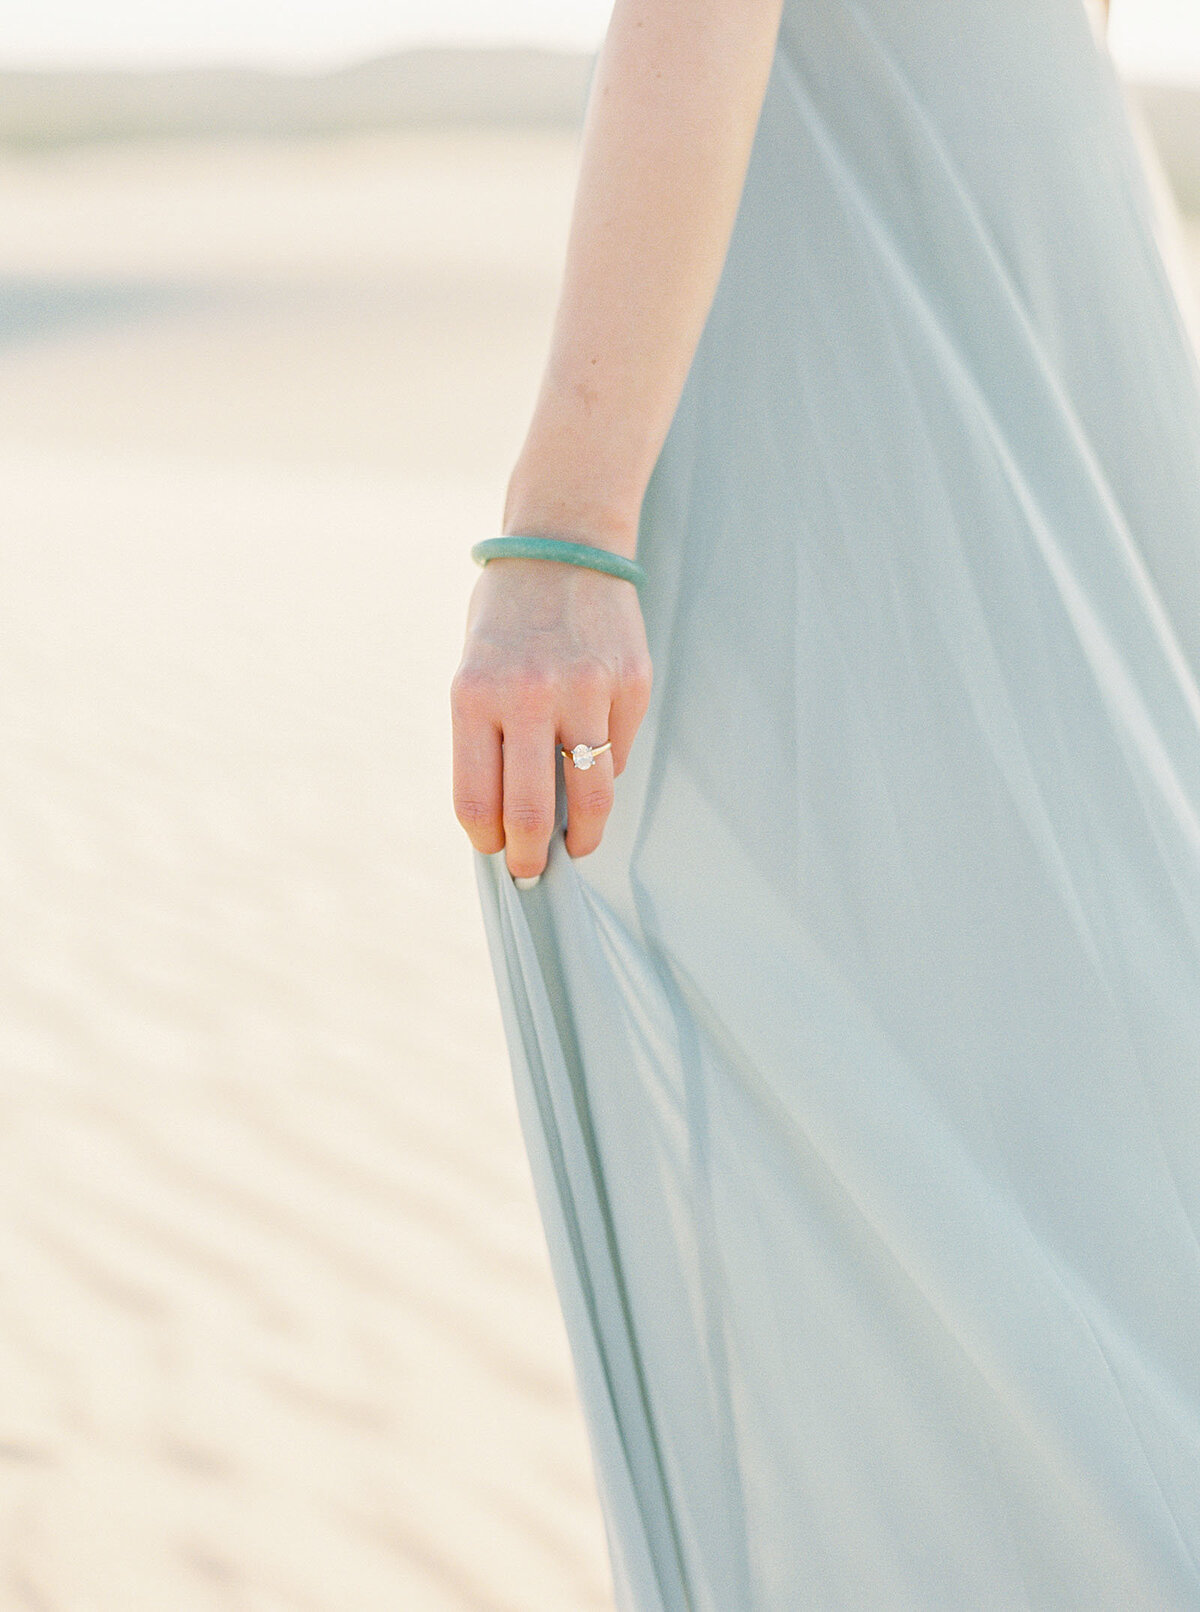 sand-dune-engagement-photos-10